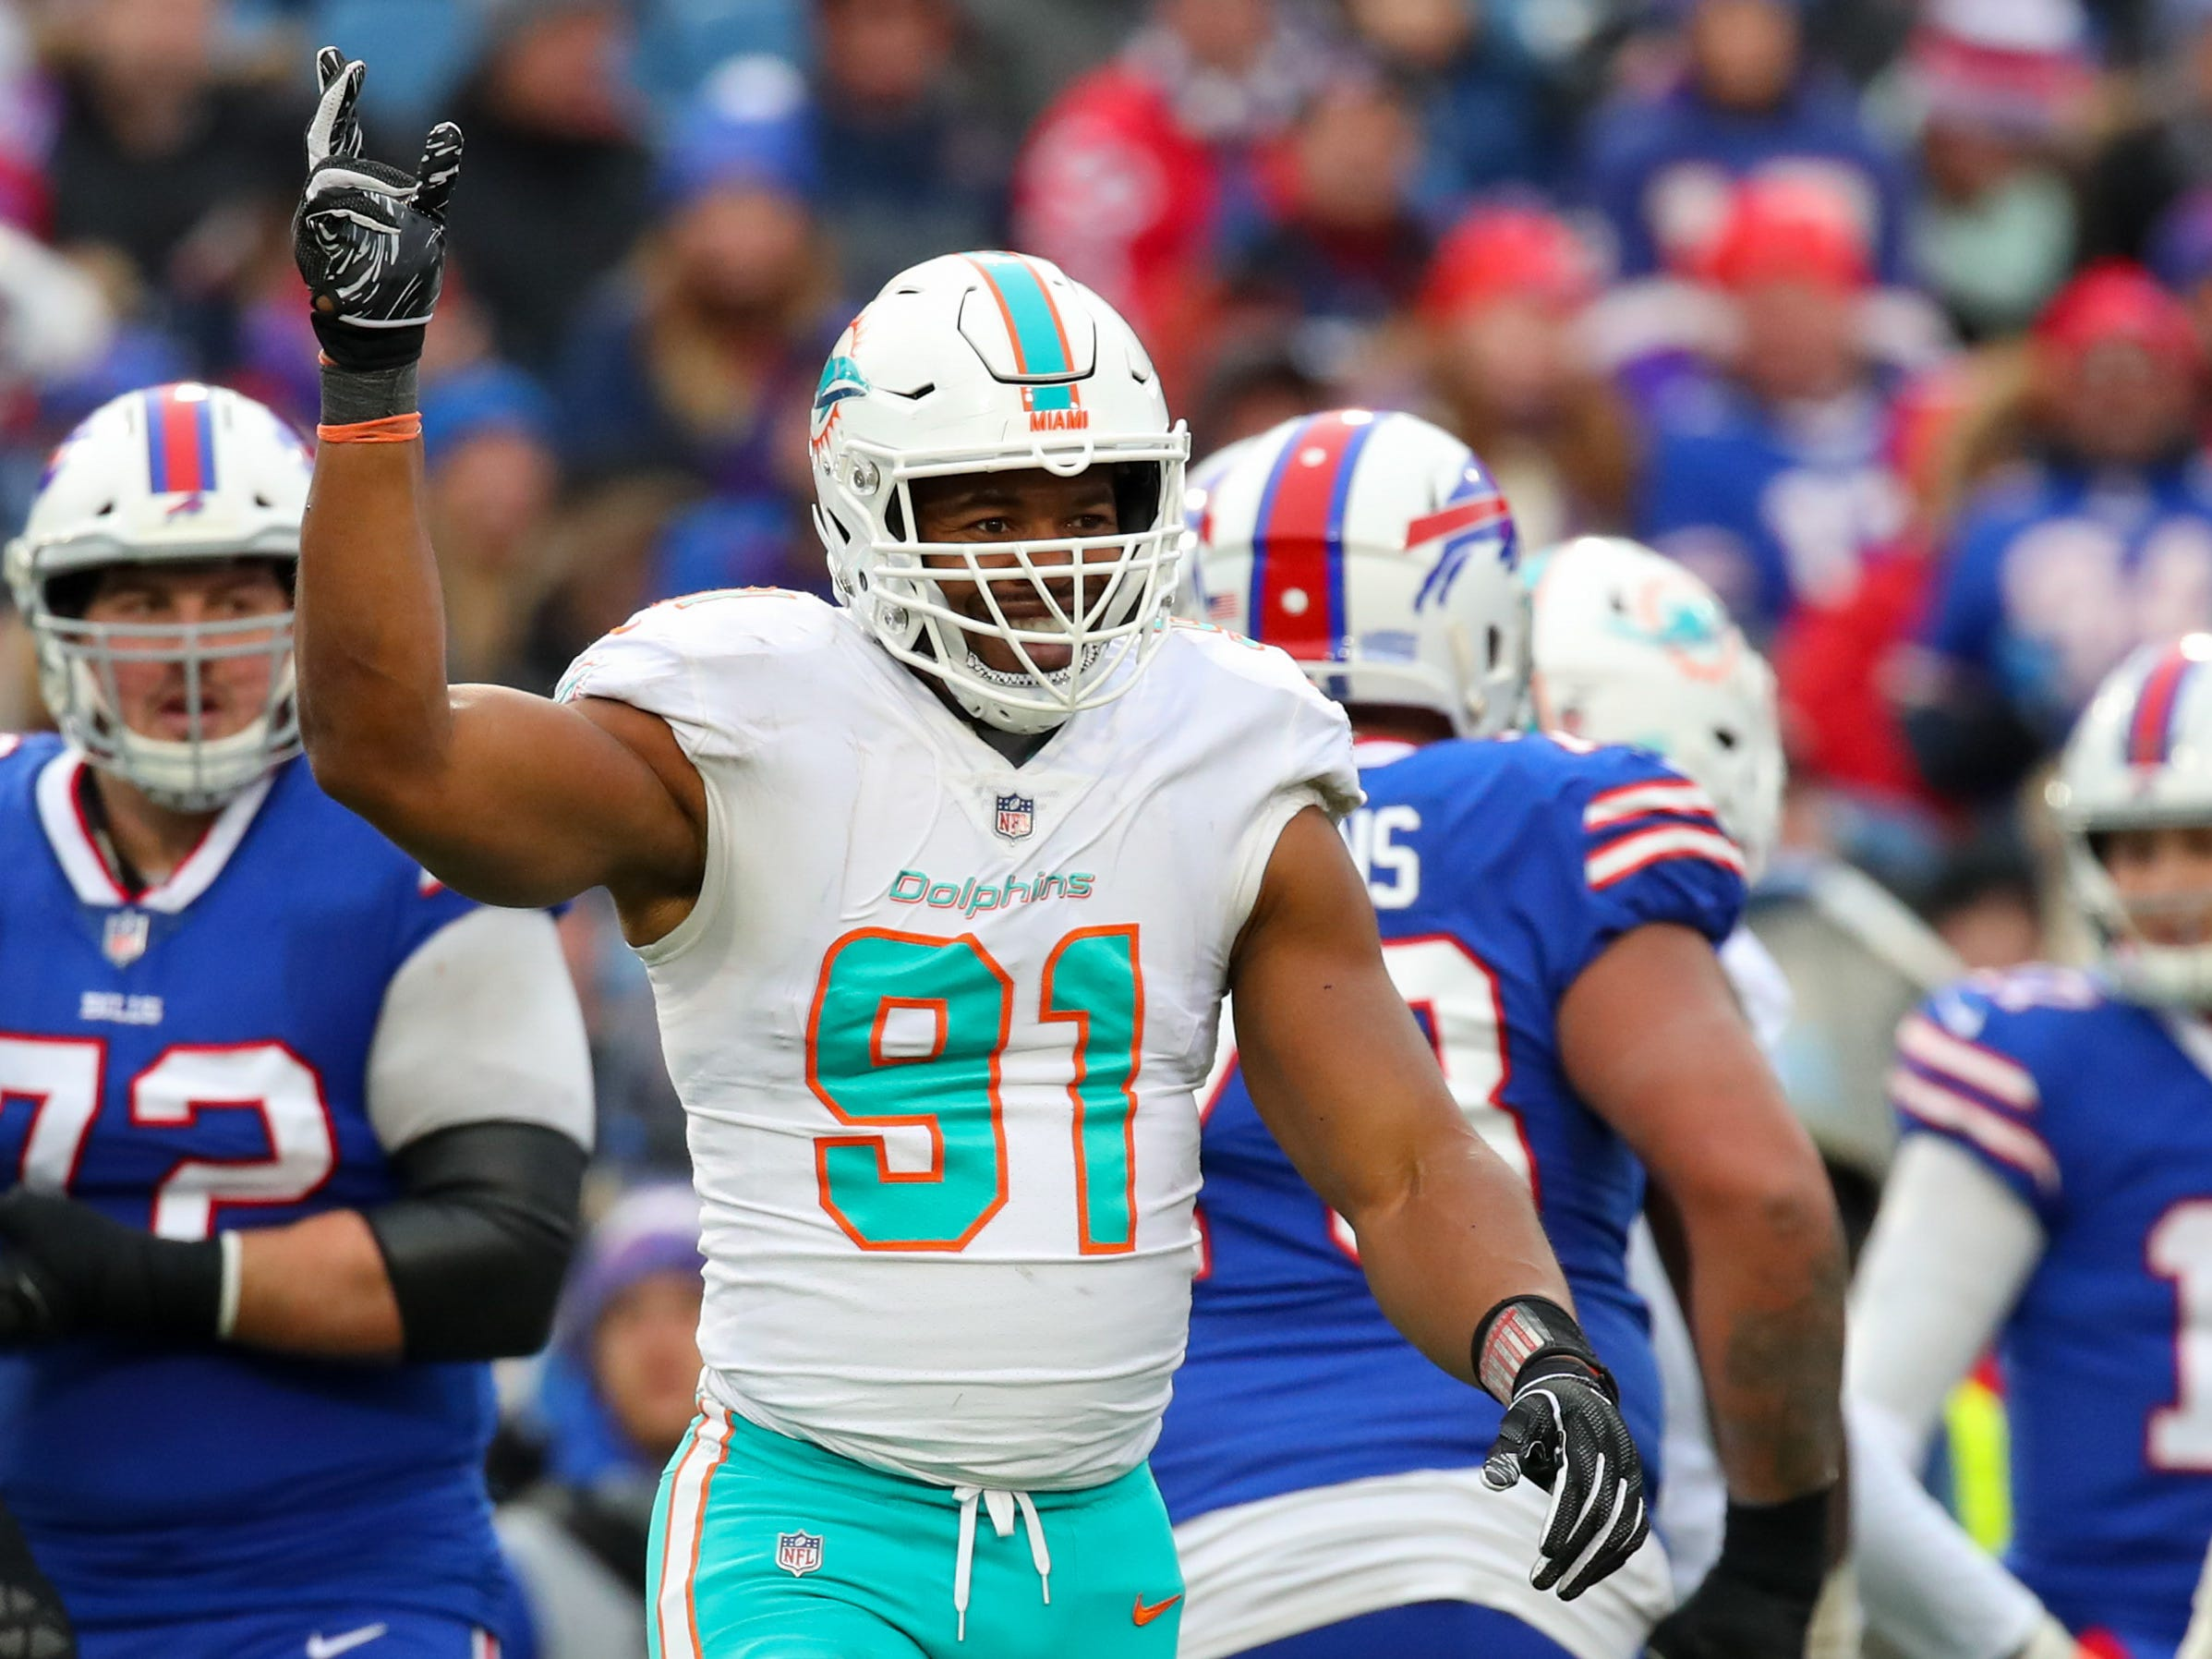 NR: Cameron Wake, DE, Dolphins: Agreed to deal with Titans